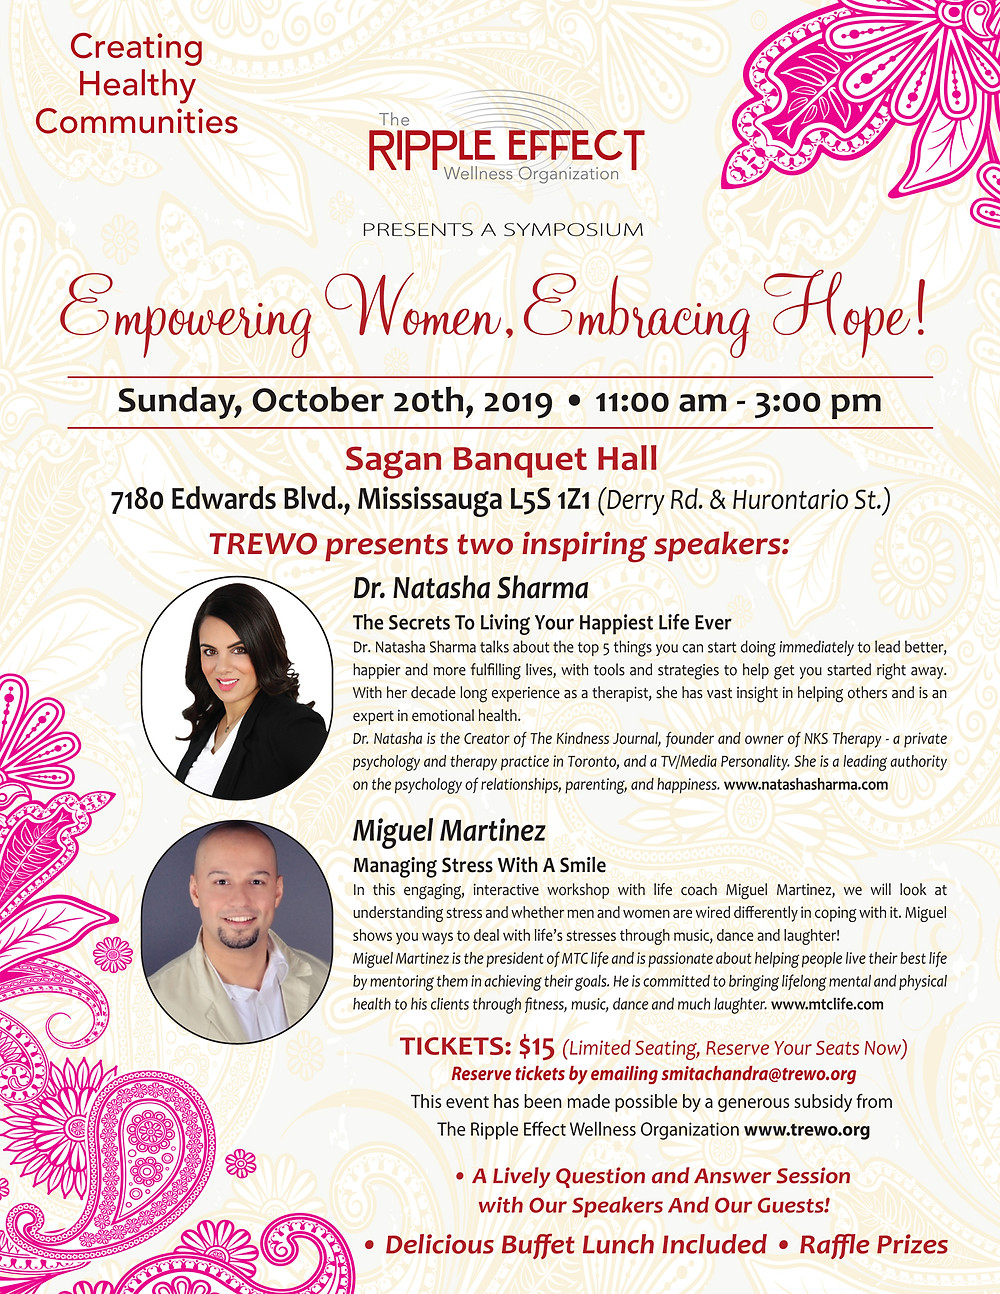 TREWO - Empowering Women, Embracing Hope